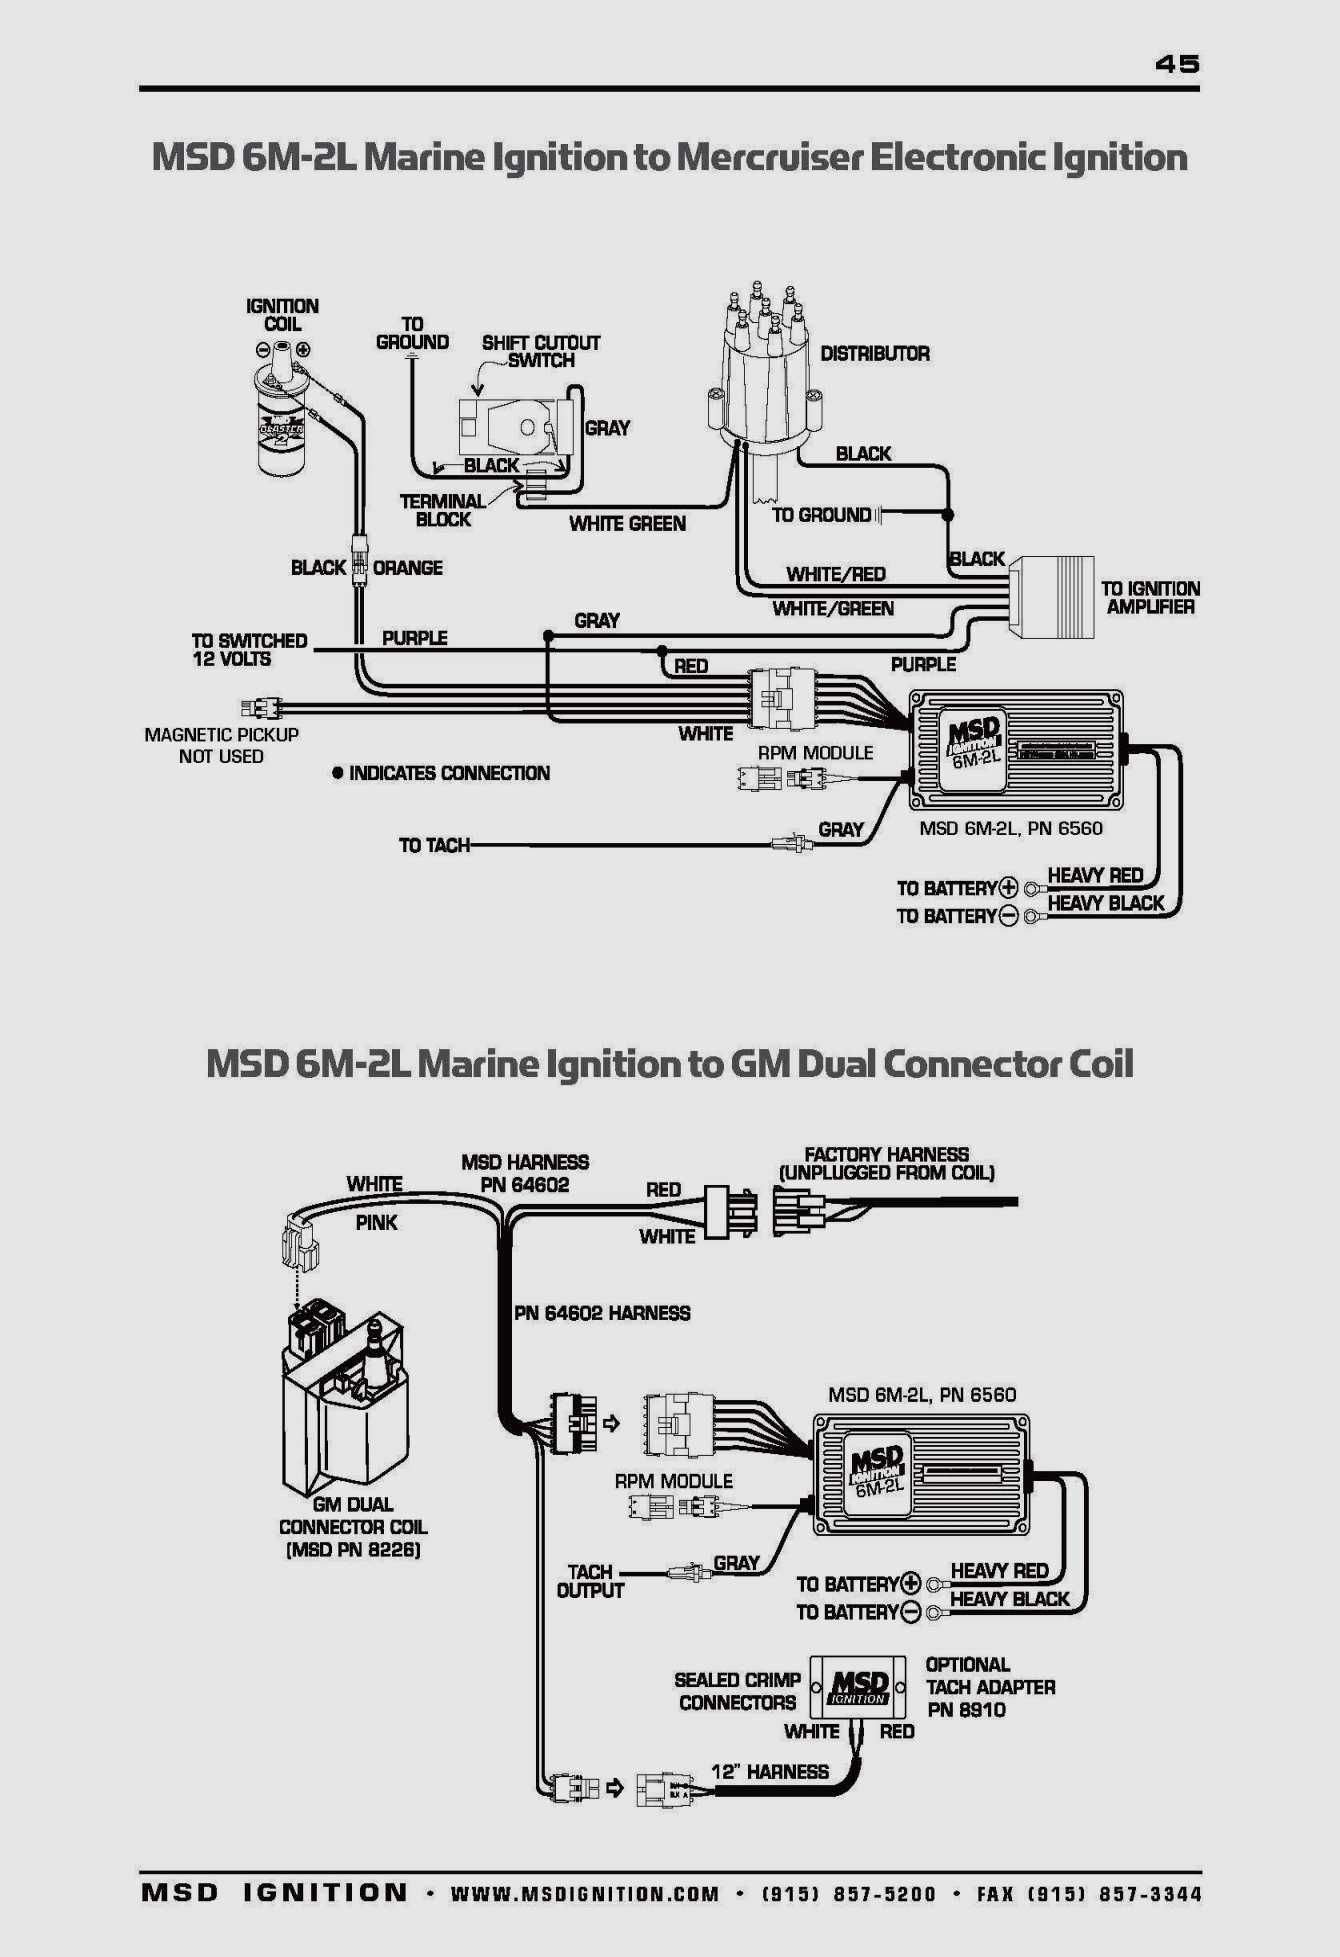 Mallory Promaster Wiring Diagram - Wiring Diagram Data - Distributor Wiring Diagram